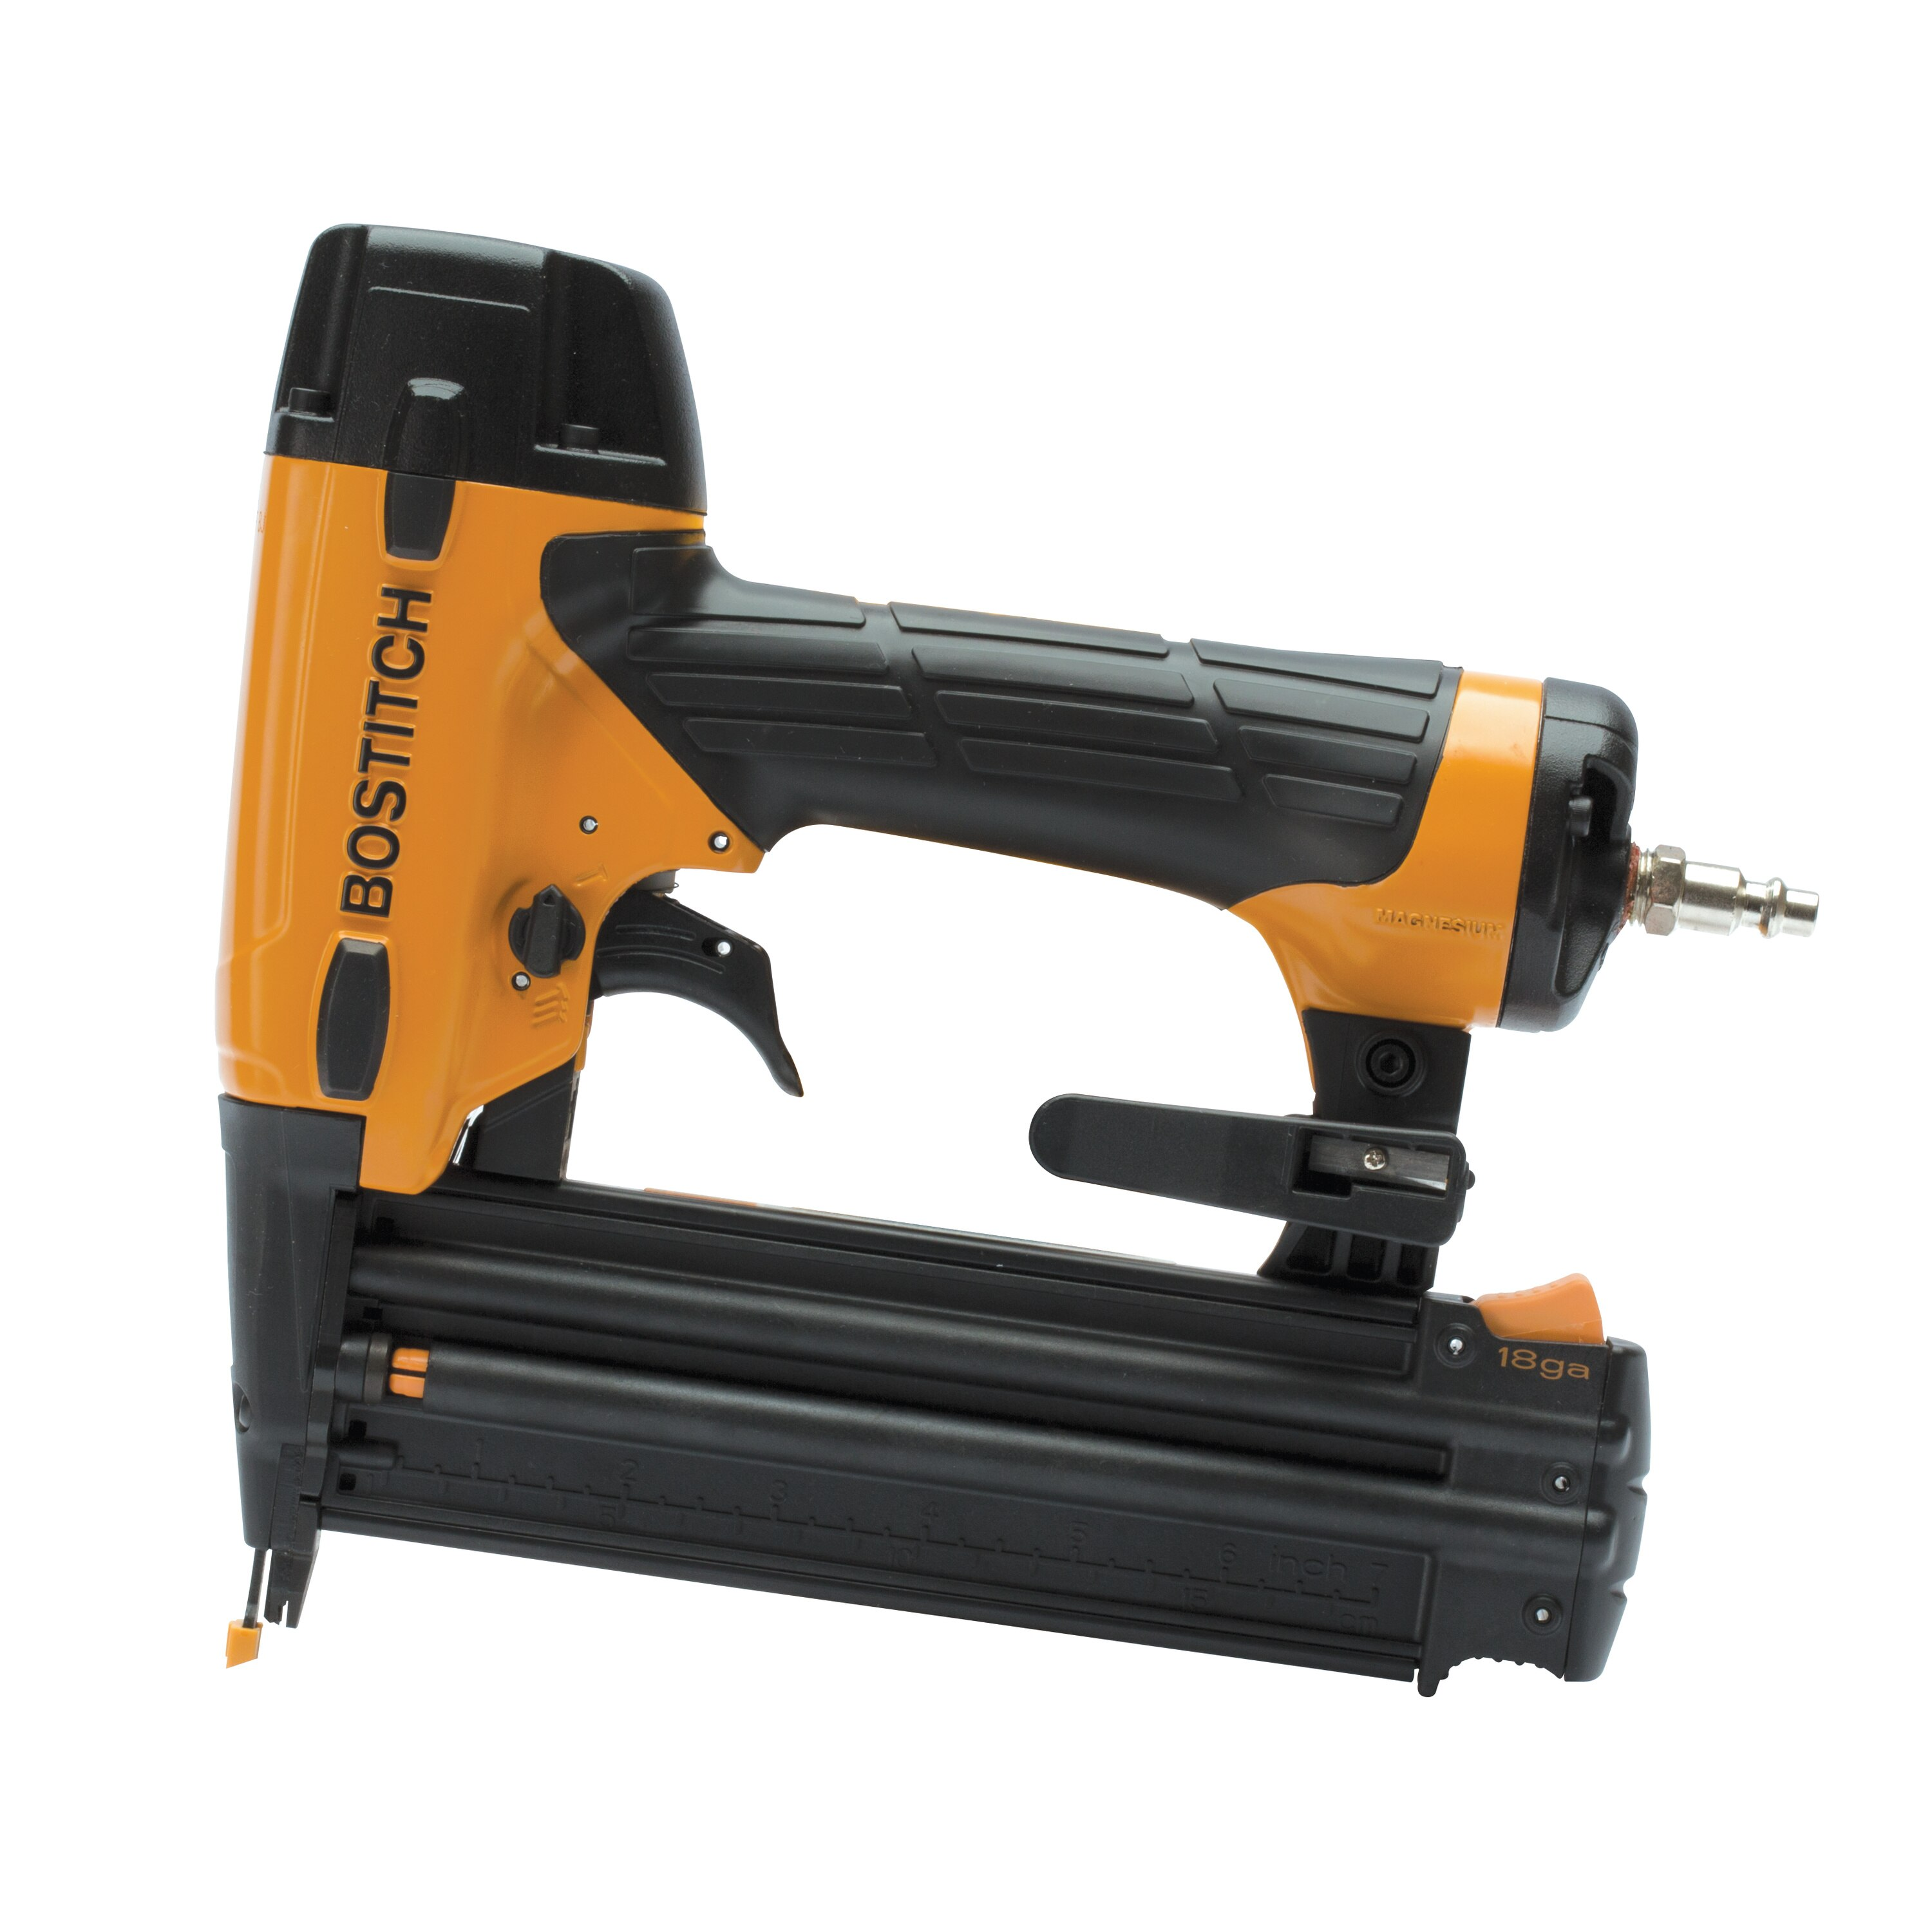 BOSTITCH 179760 NON-MARKING CONTACT FOOT FOR BRAD NAILER